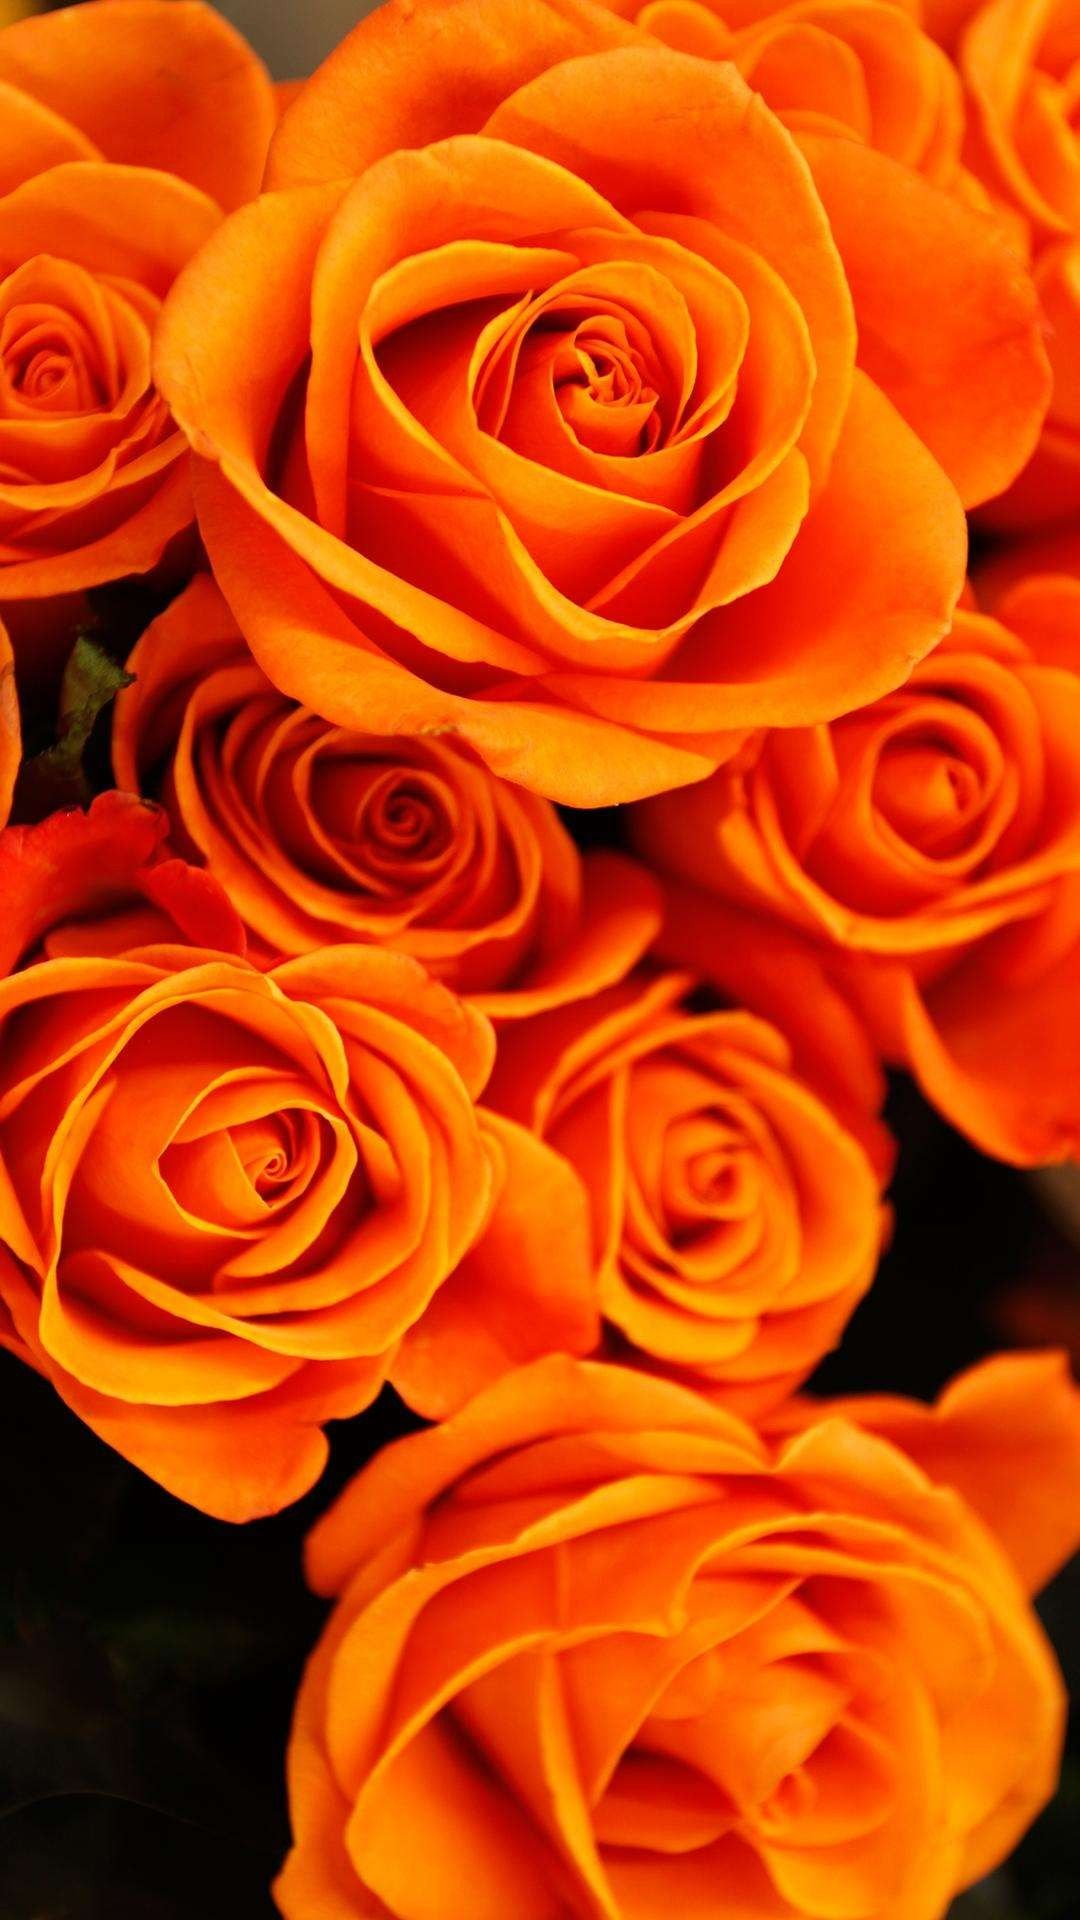 Pin by Paradora on Wallpapers | Flower aesthetic, Orange ...